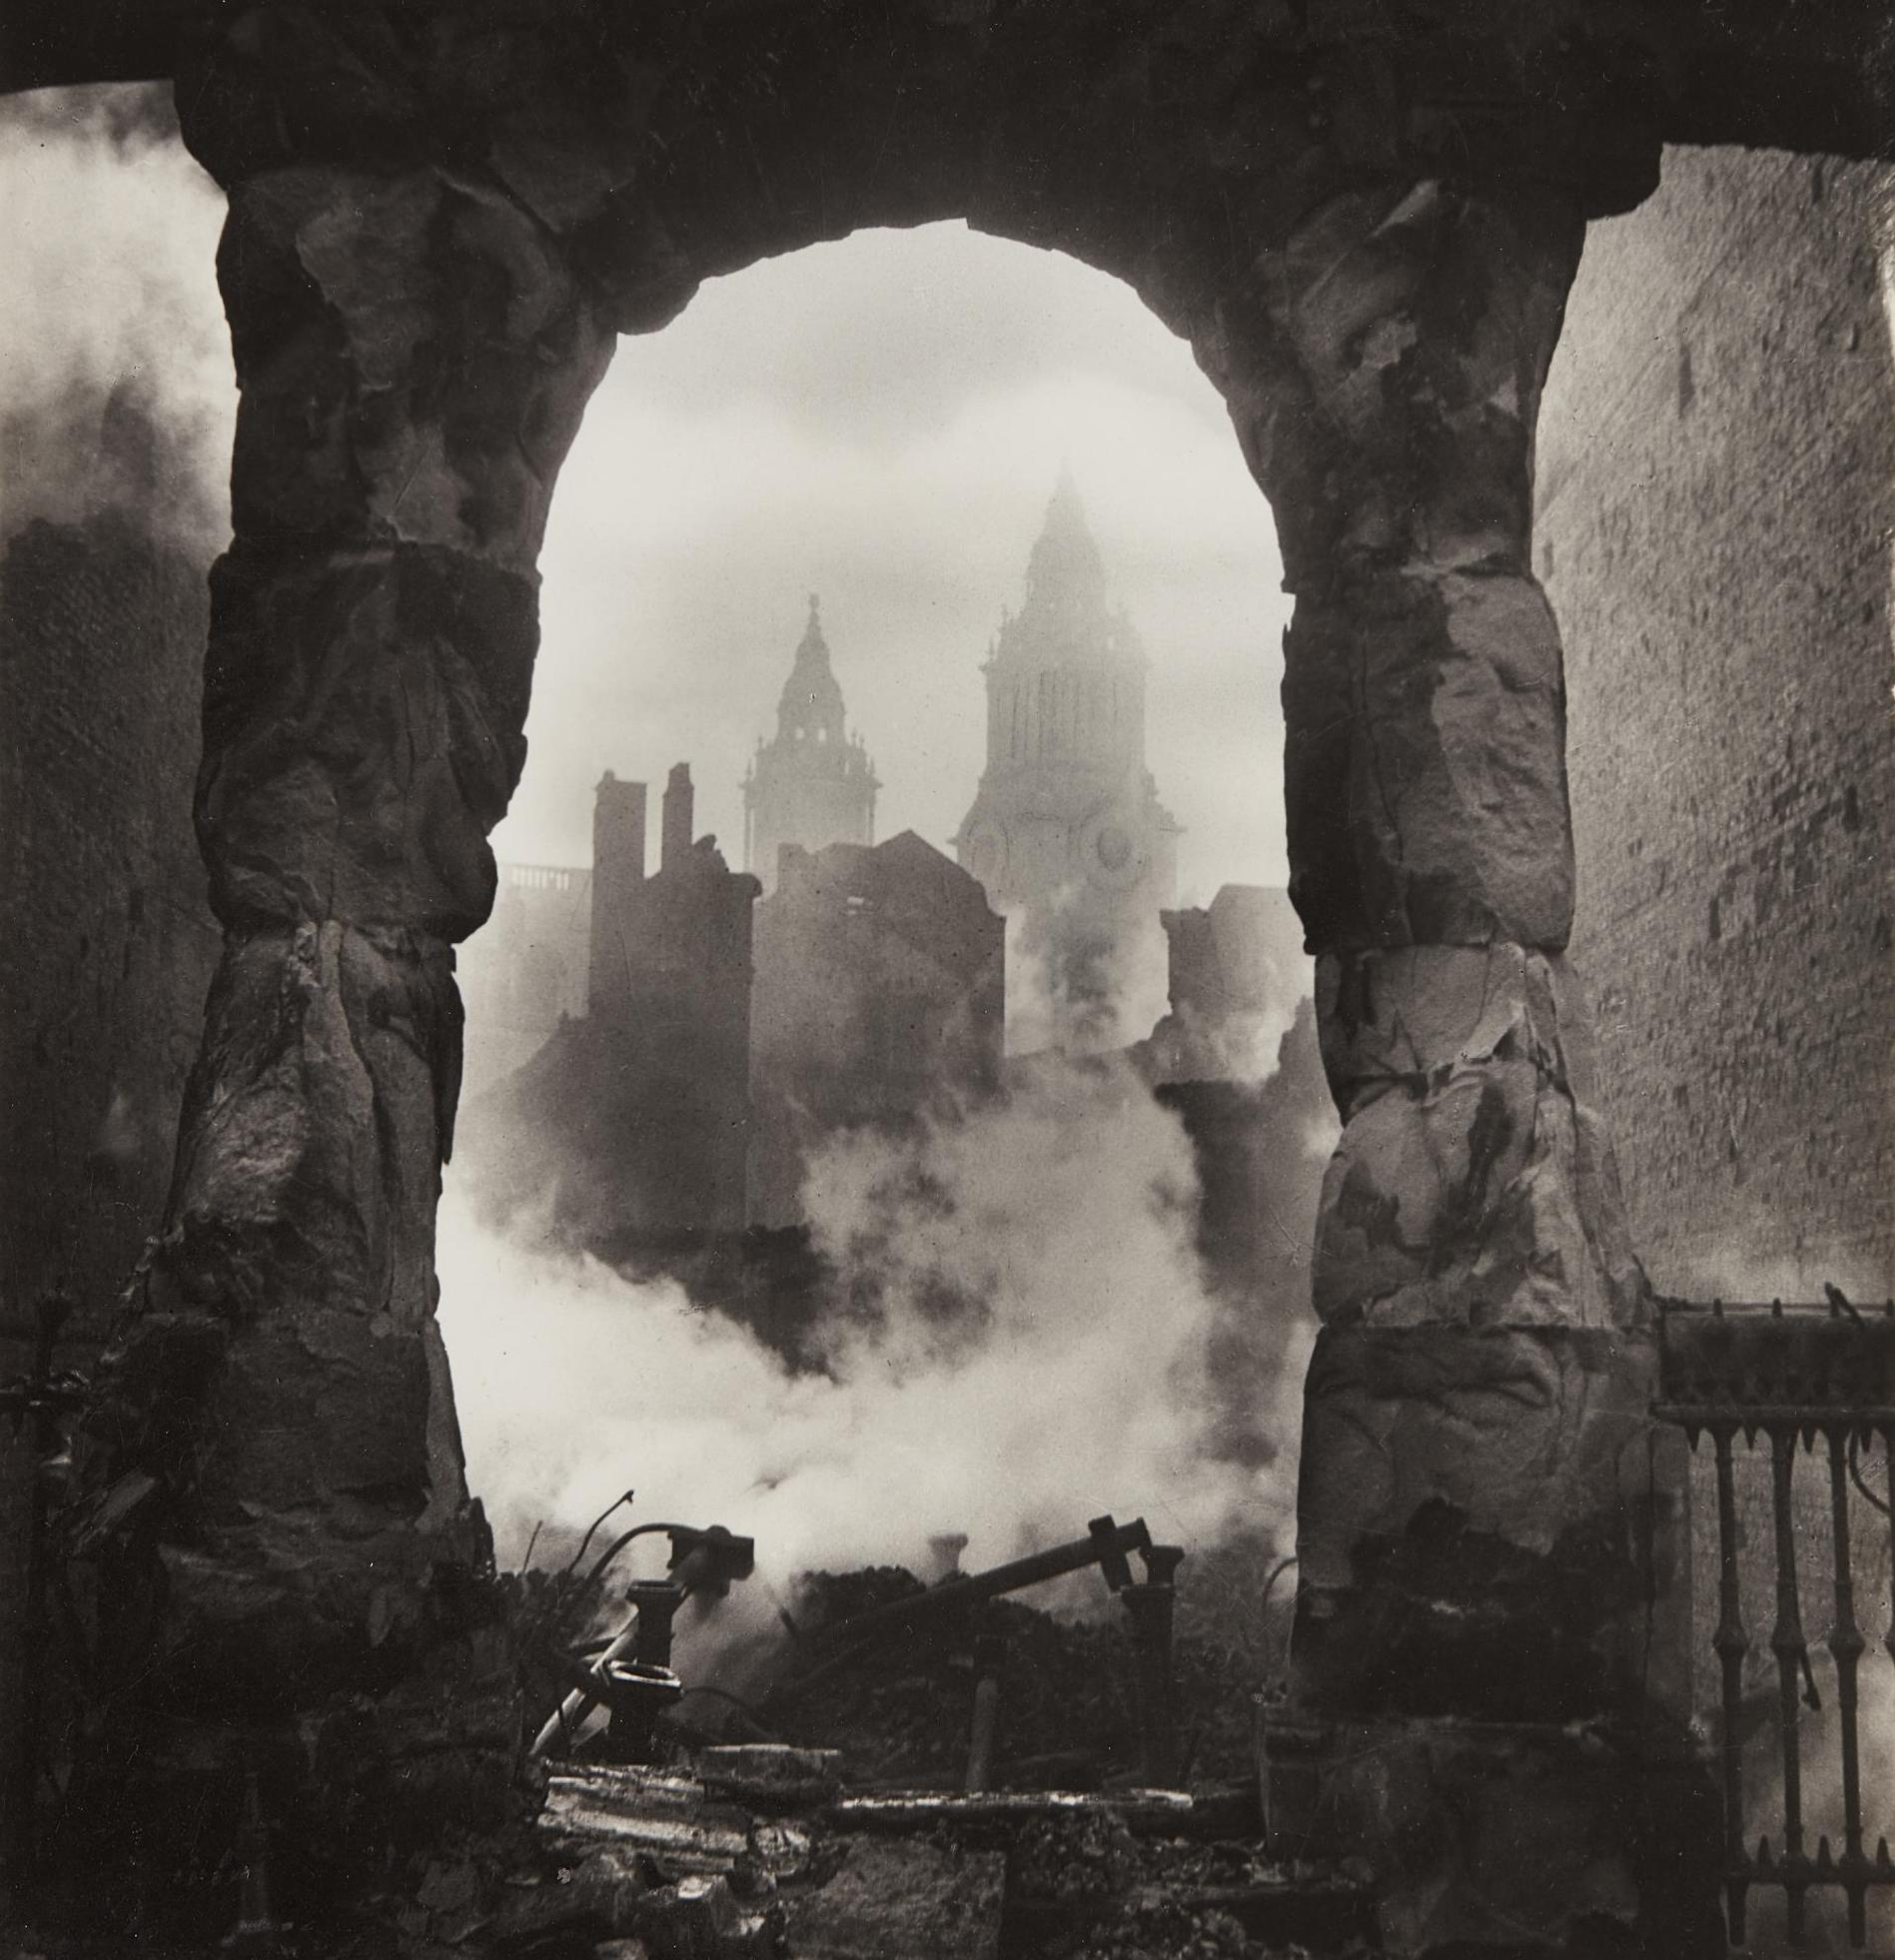 Cecil Beaton-The Blitz/Western Campanile Of St. Paul'S Seen Through Victorian Shop-Front-1940